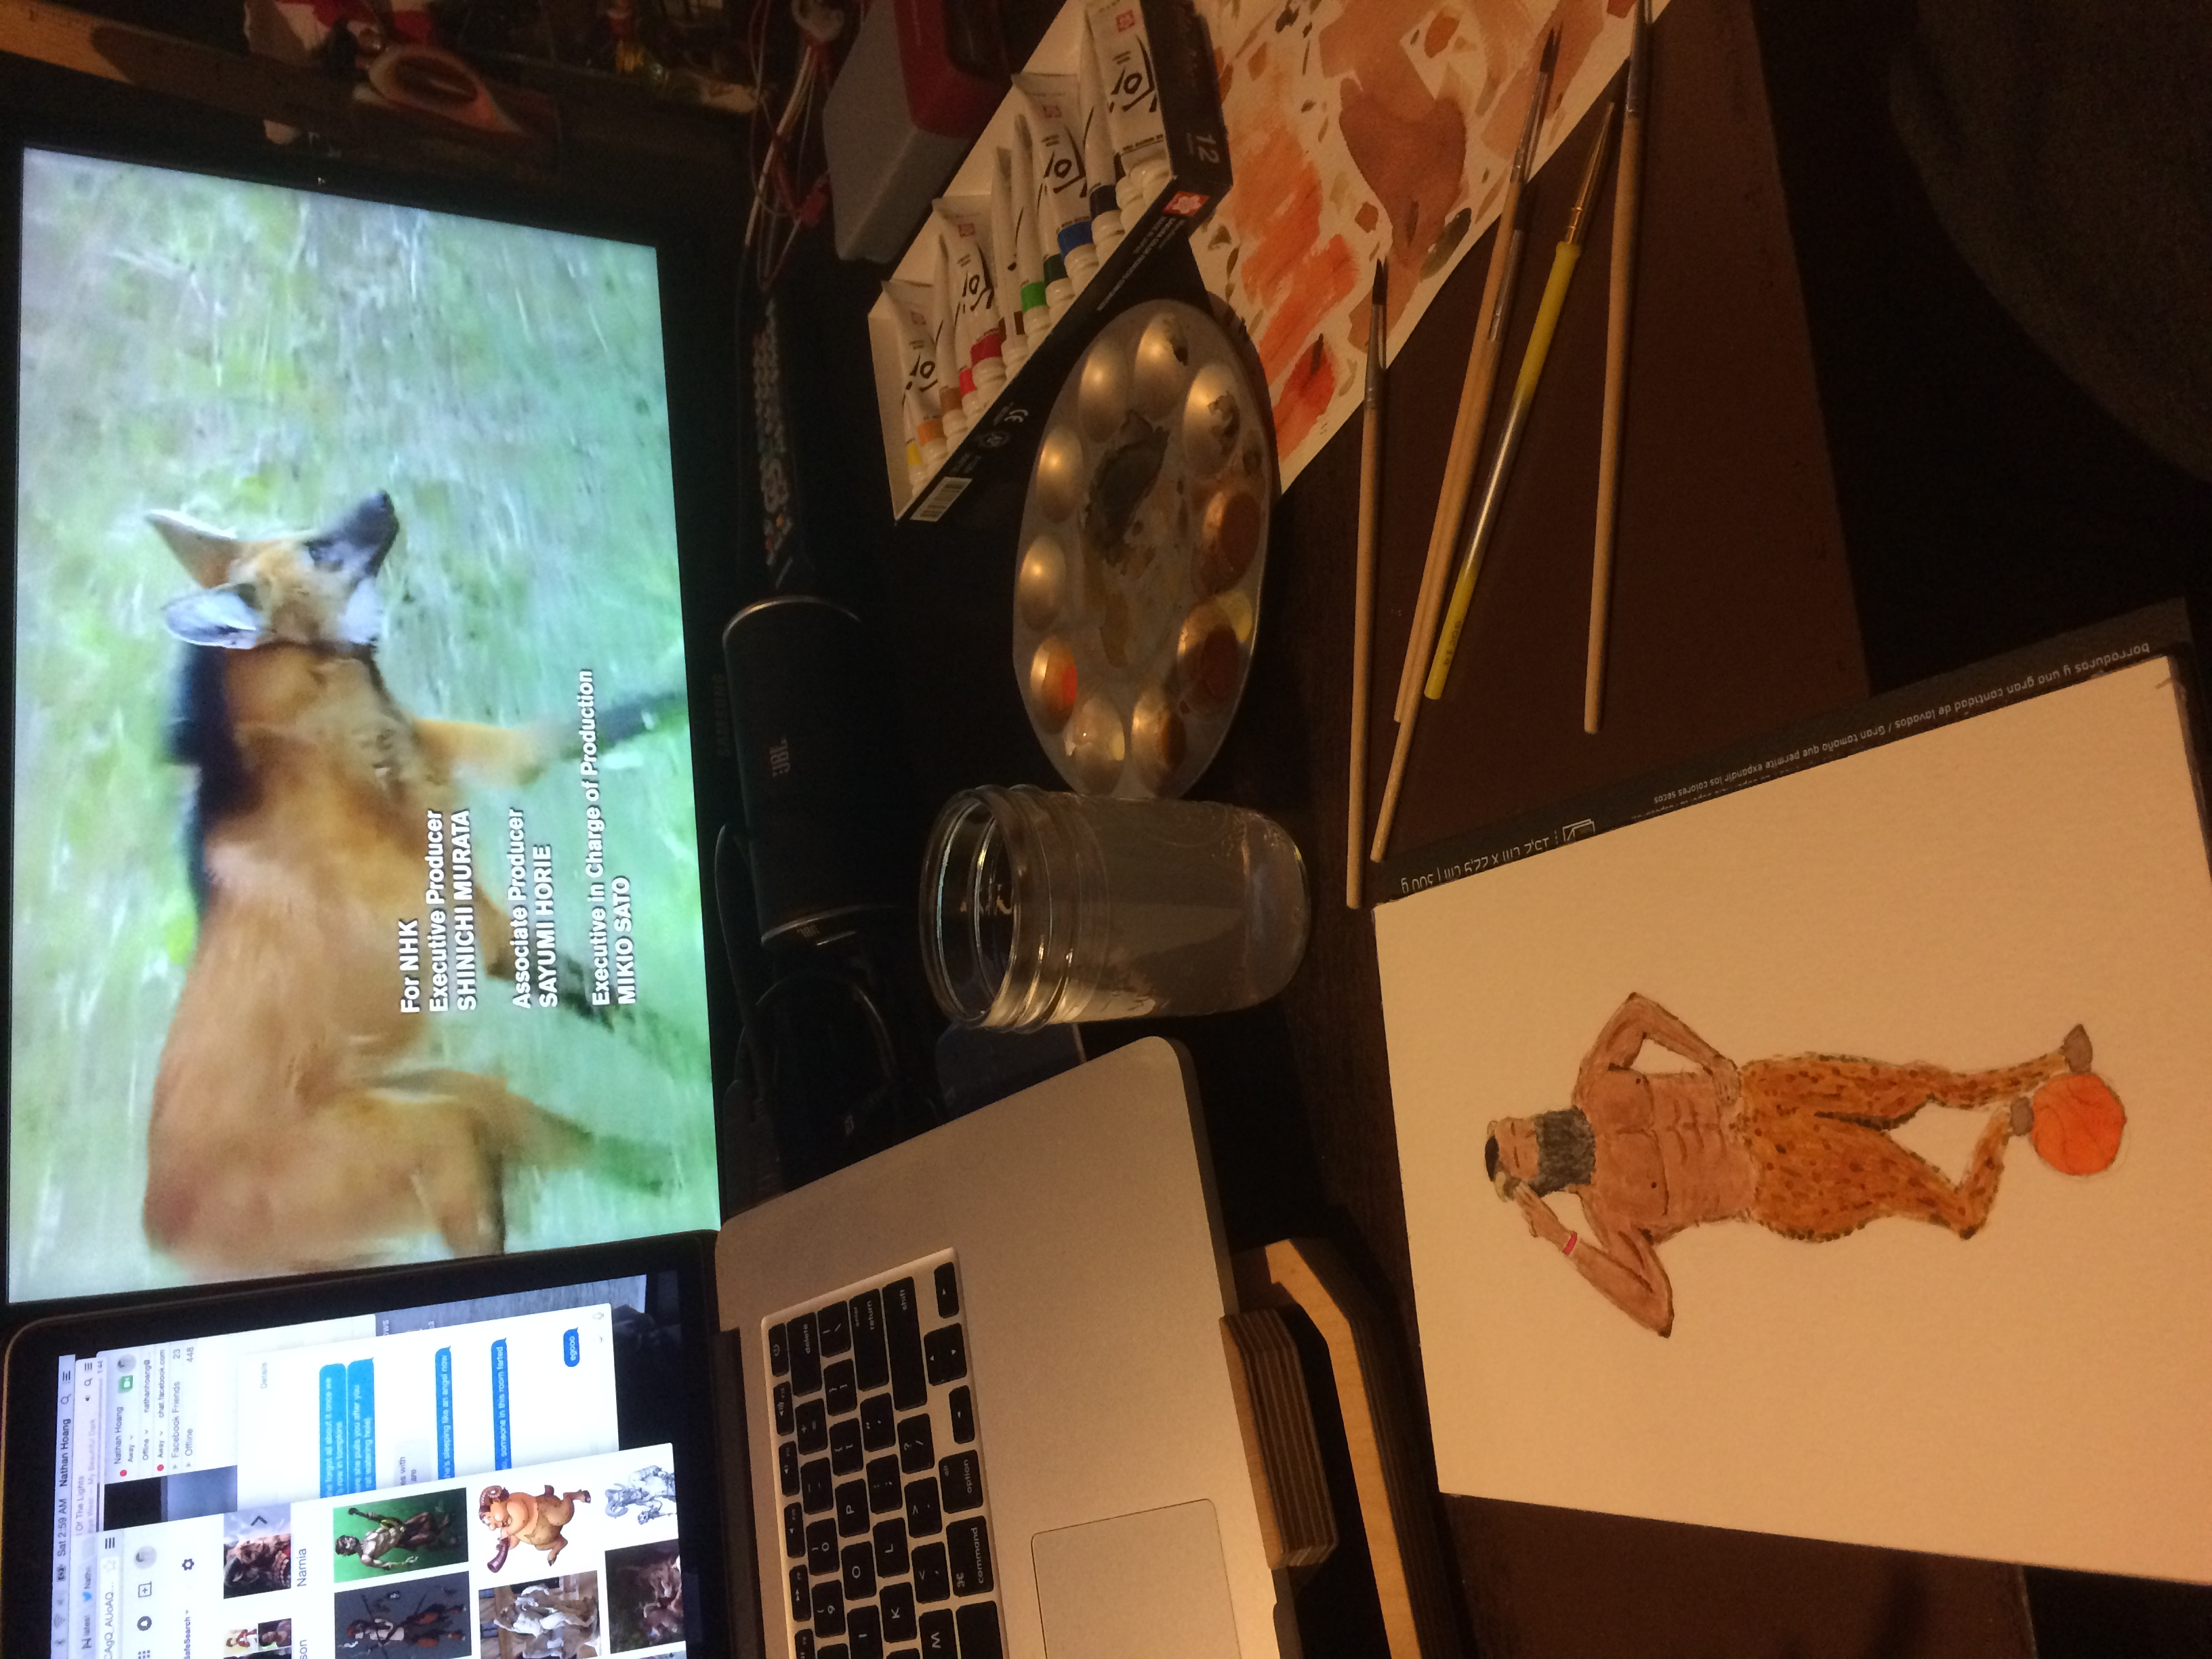 Painting an NBA satyr while watching a nature program.